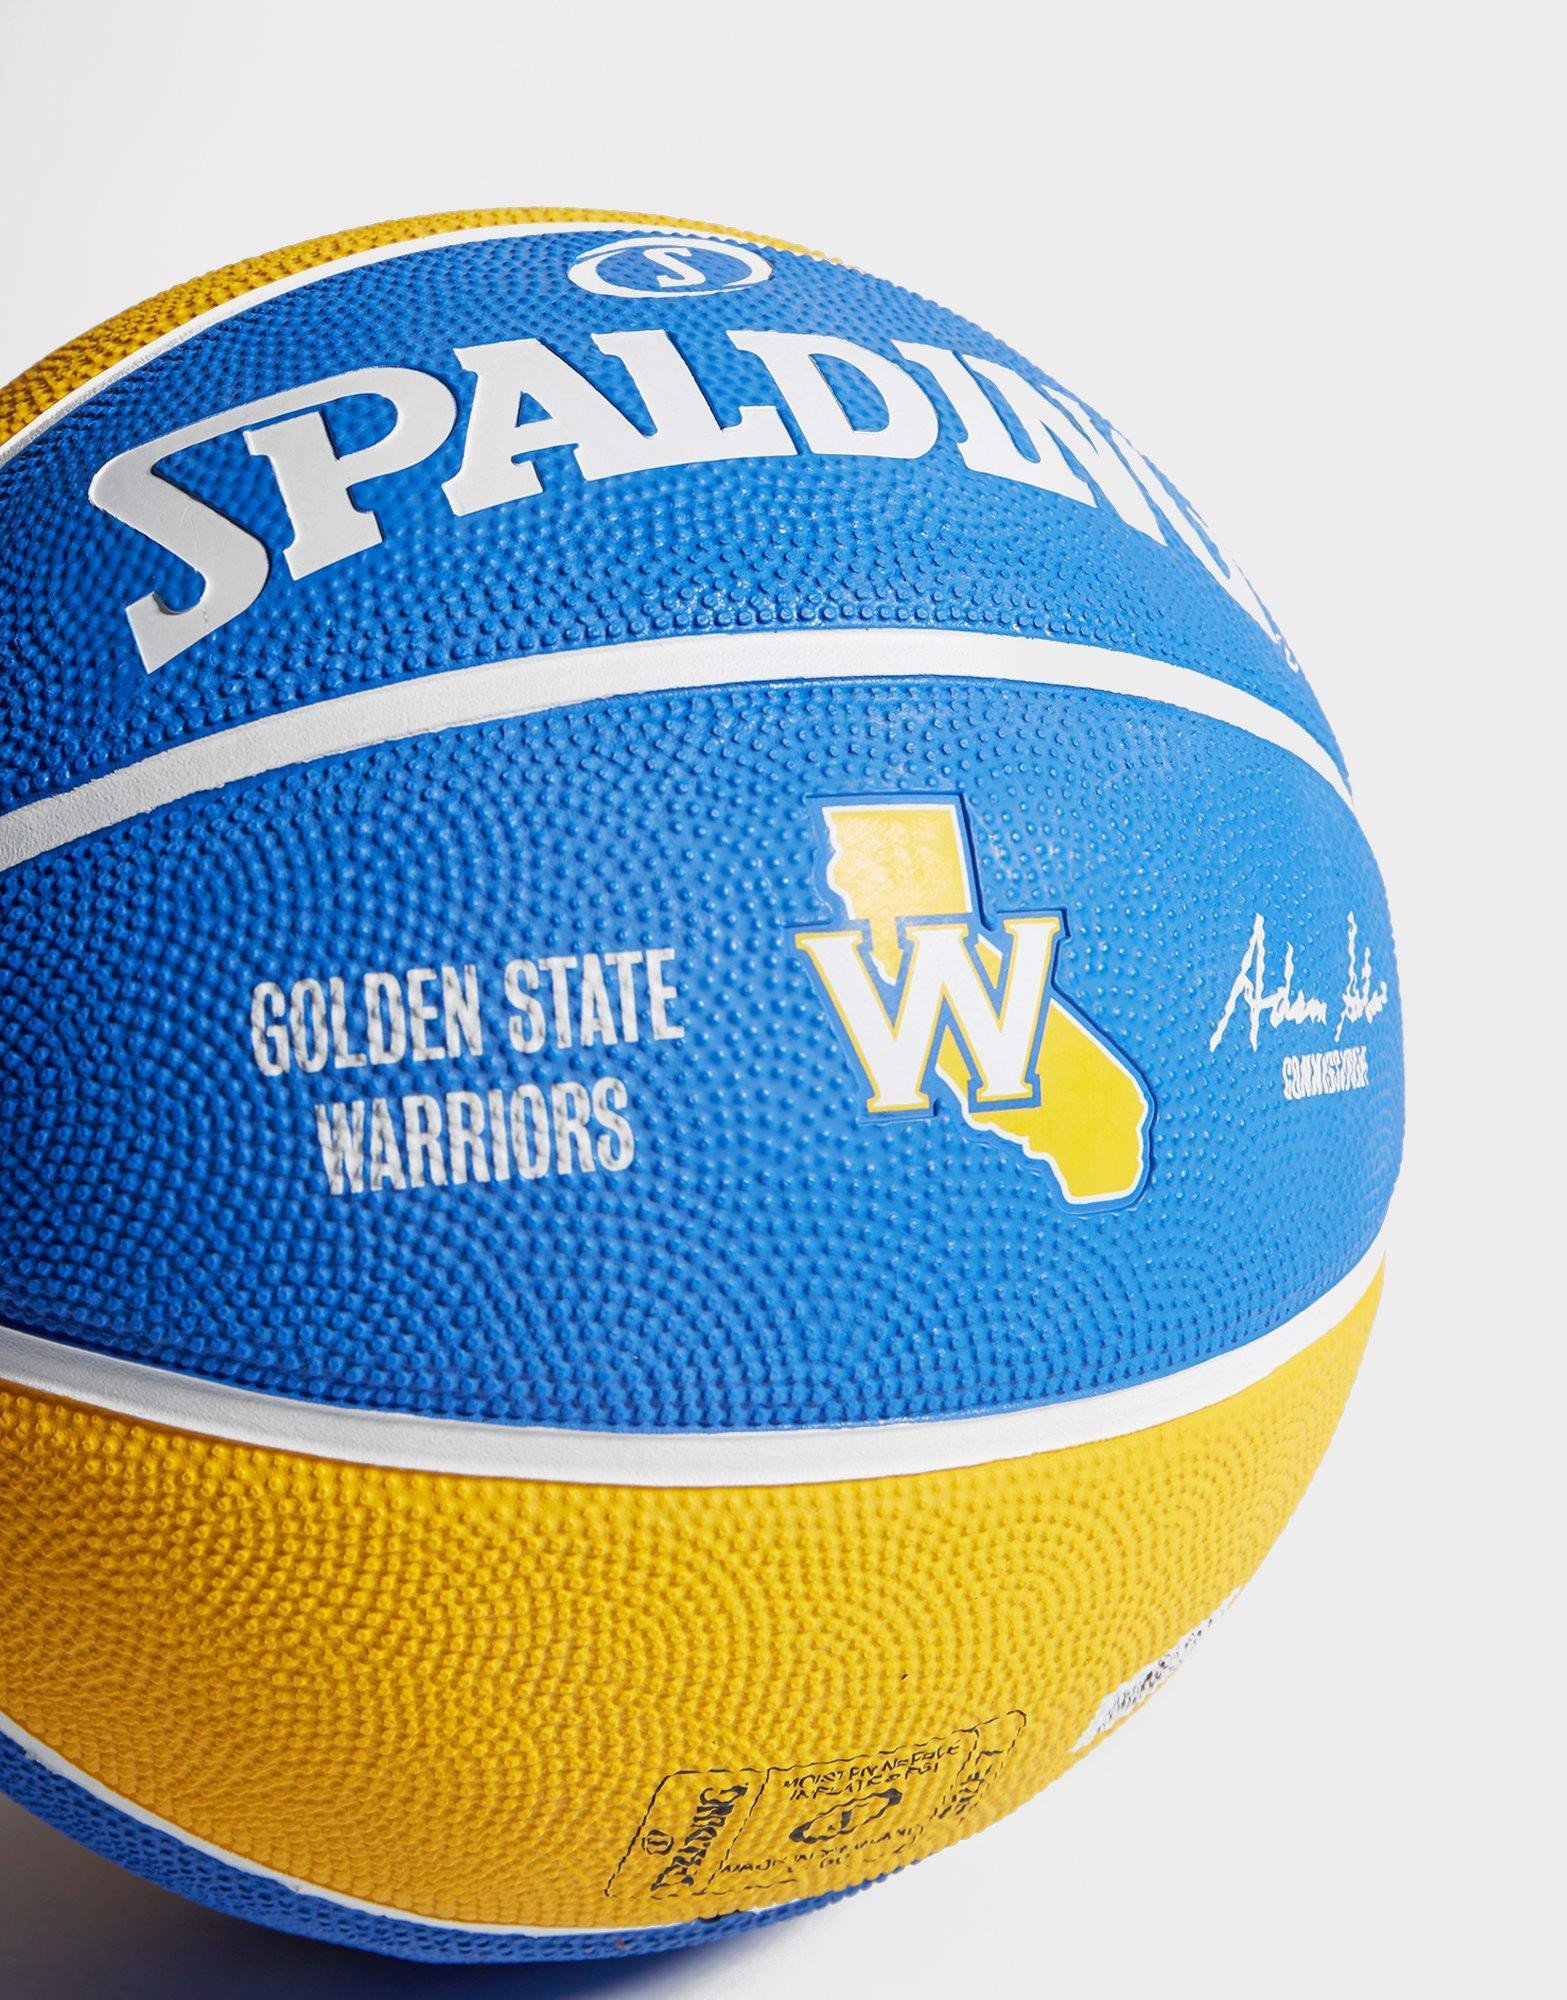 Spalding Golden State Warriors Outdoor Size 7